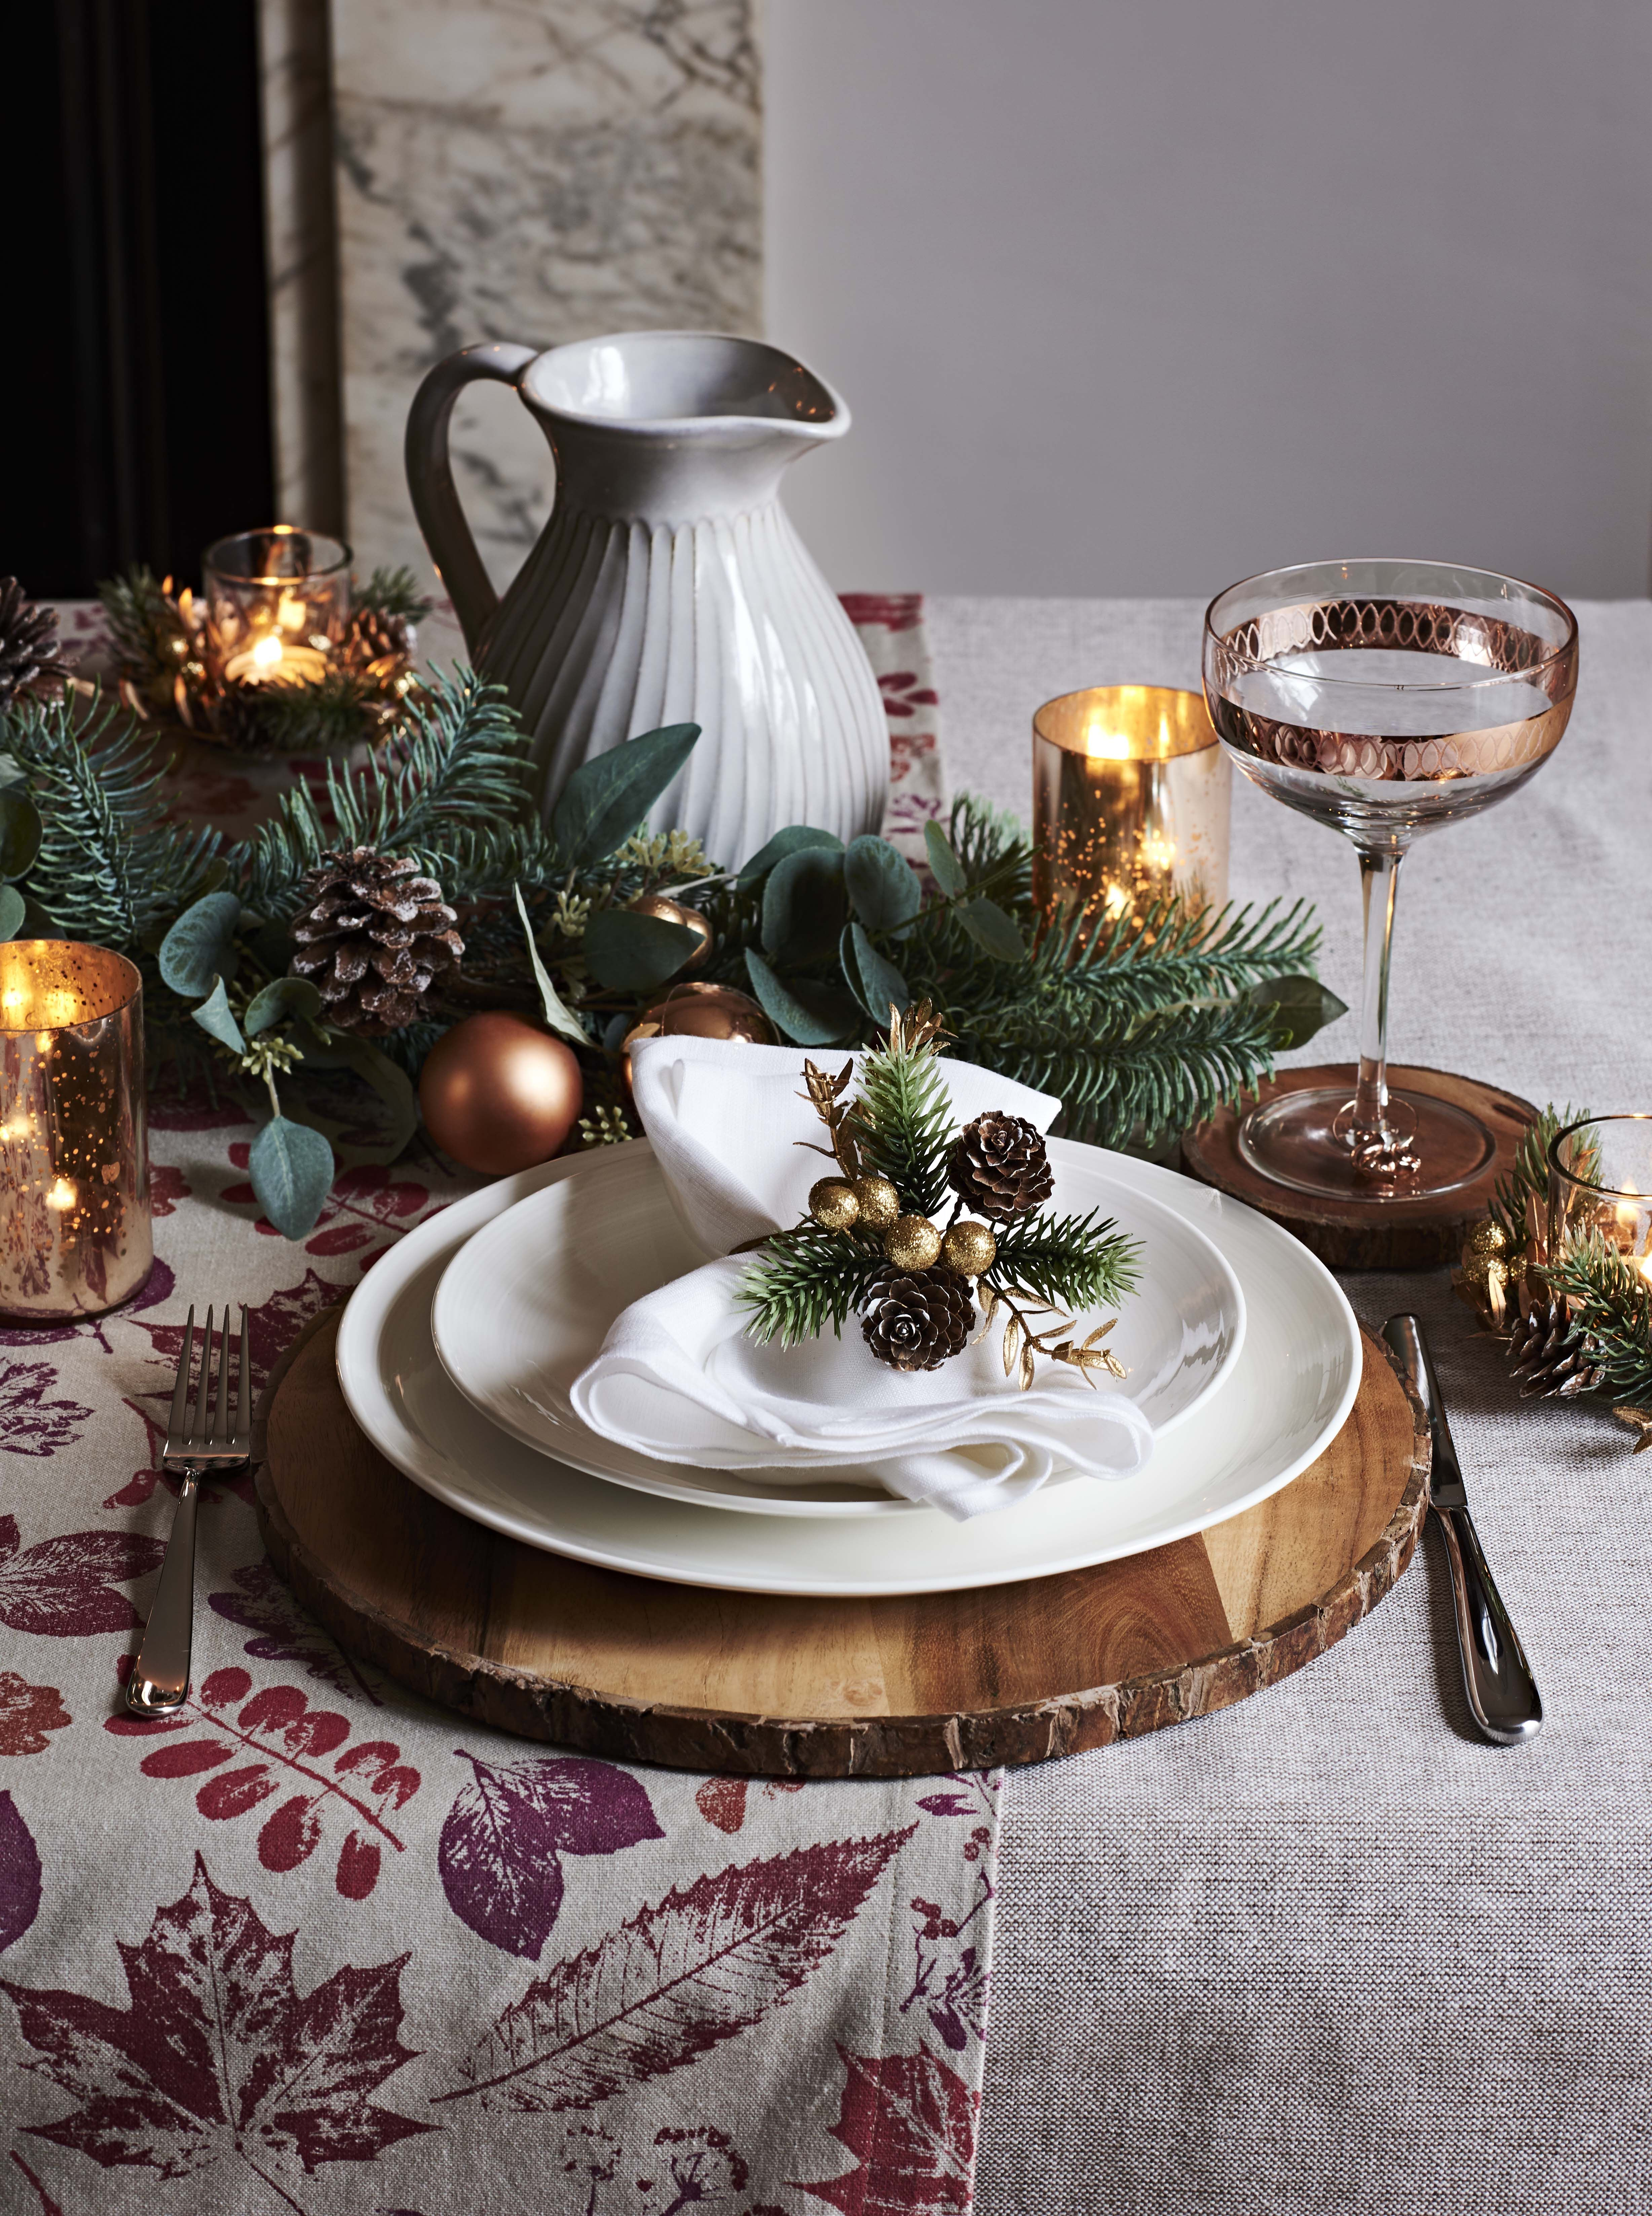 John Lewis Acacia Wood Bark Round Placemat 18 Pinecone Napkin Rings 15 B Christmas Table Decorations Diy Christmas Table Decorations Diy Christmas Table